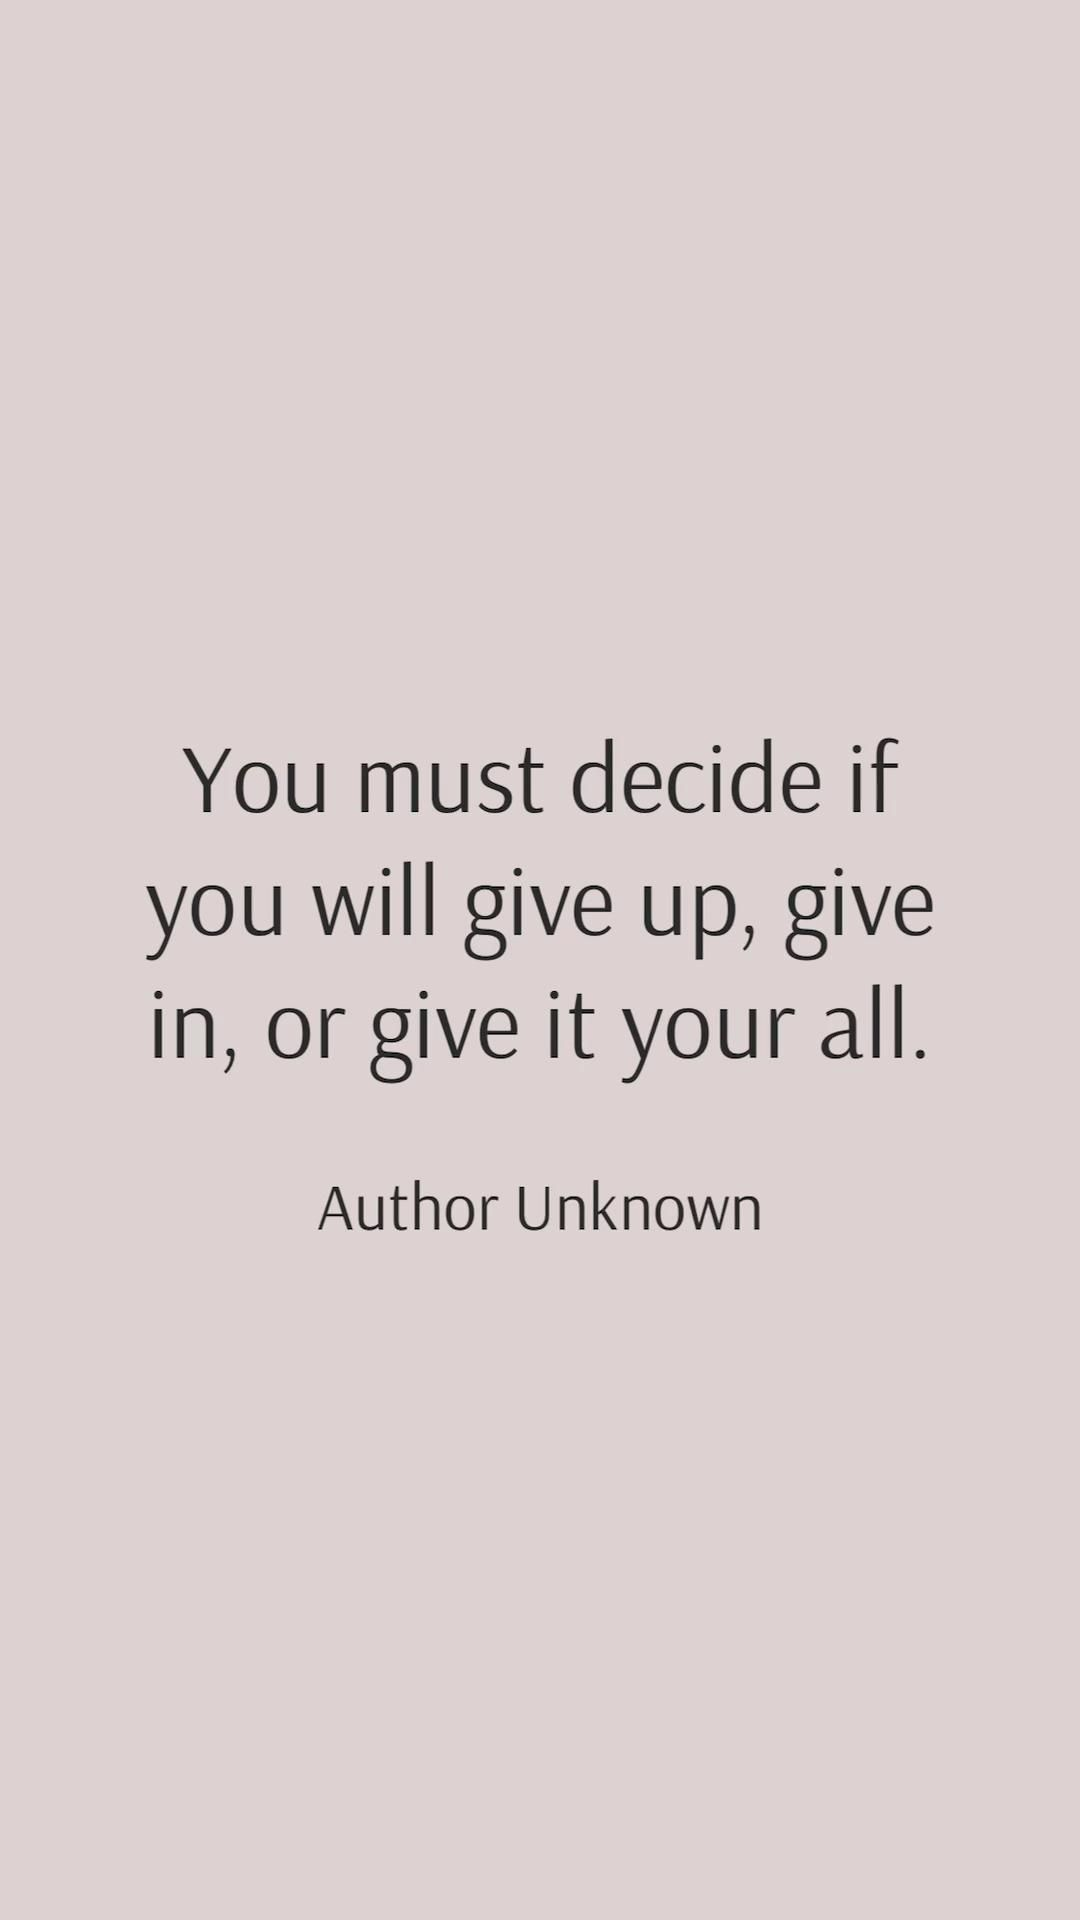 I HOPE you decide to give it your all!